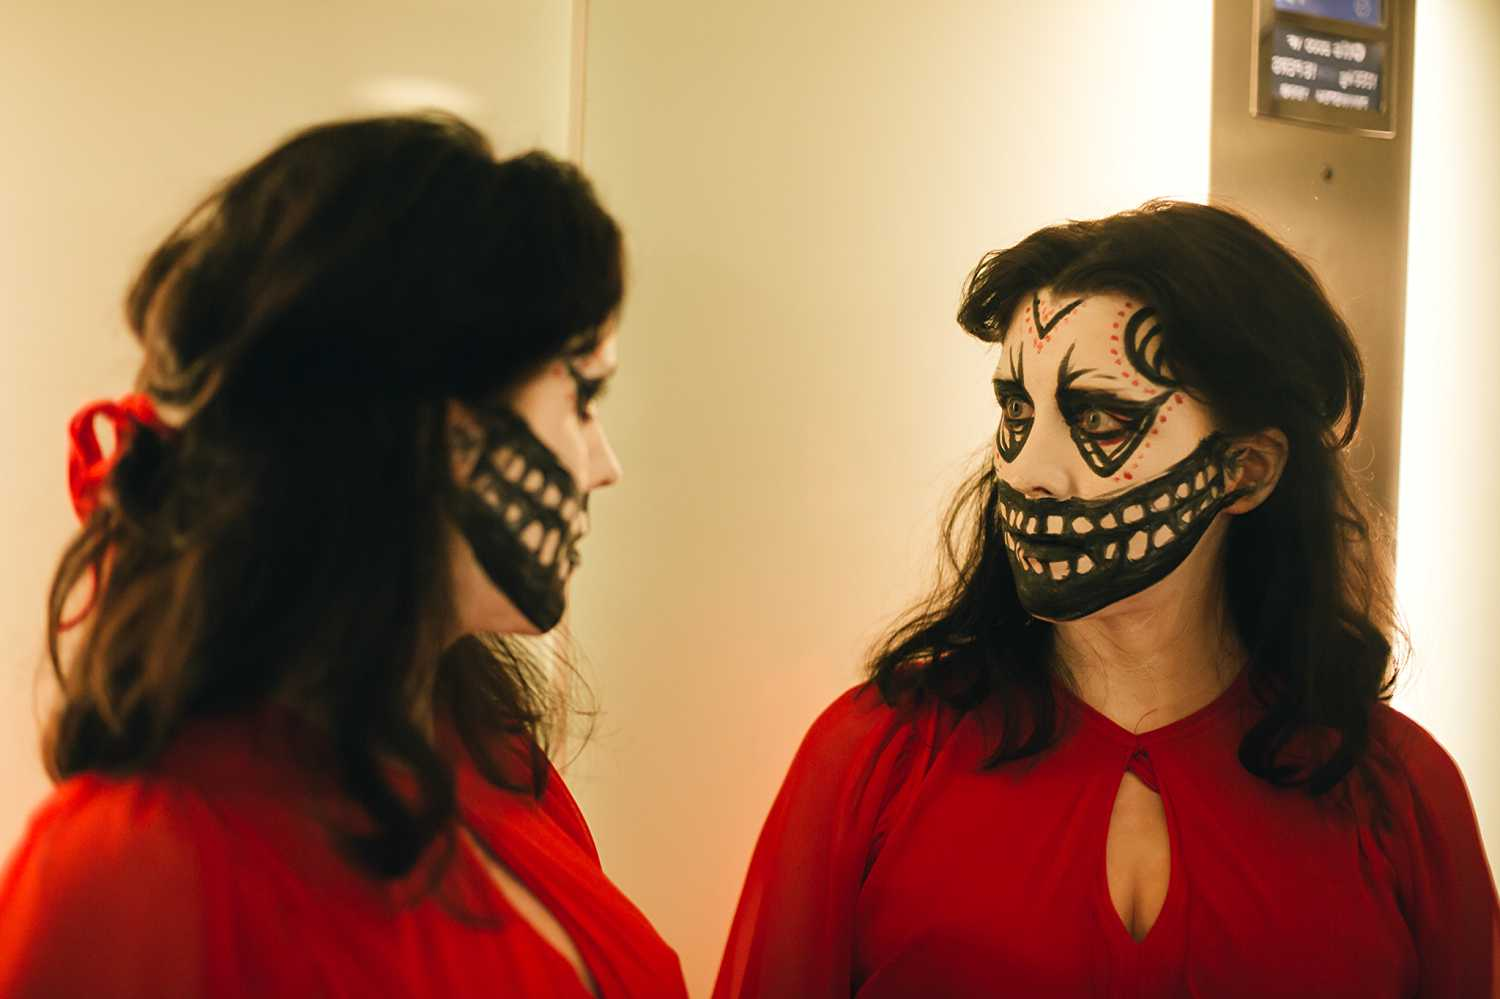 'Prevenge' is a story about an unborn child and its ambitions to murder. (IMDb)